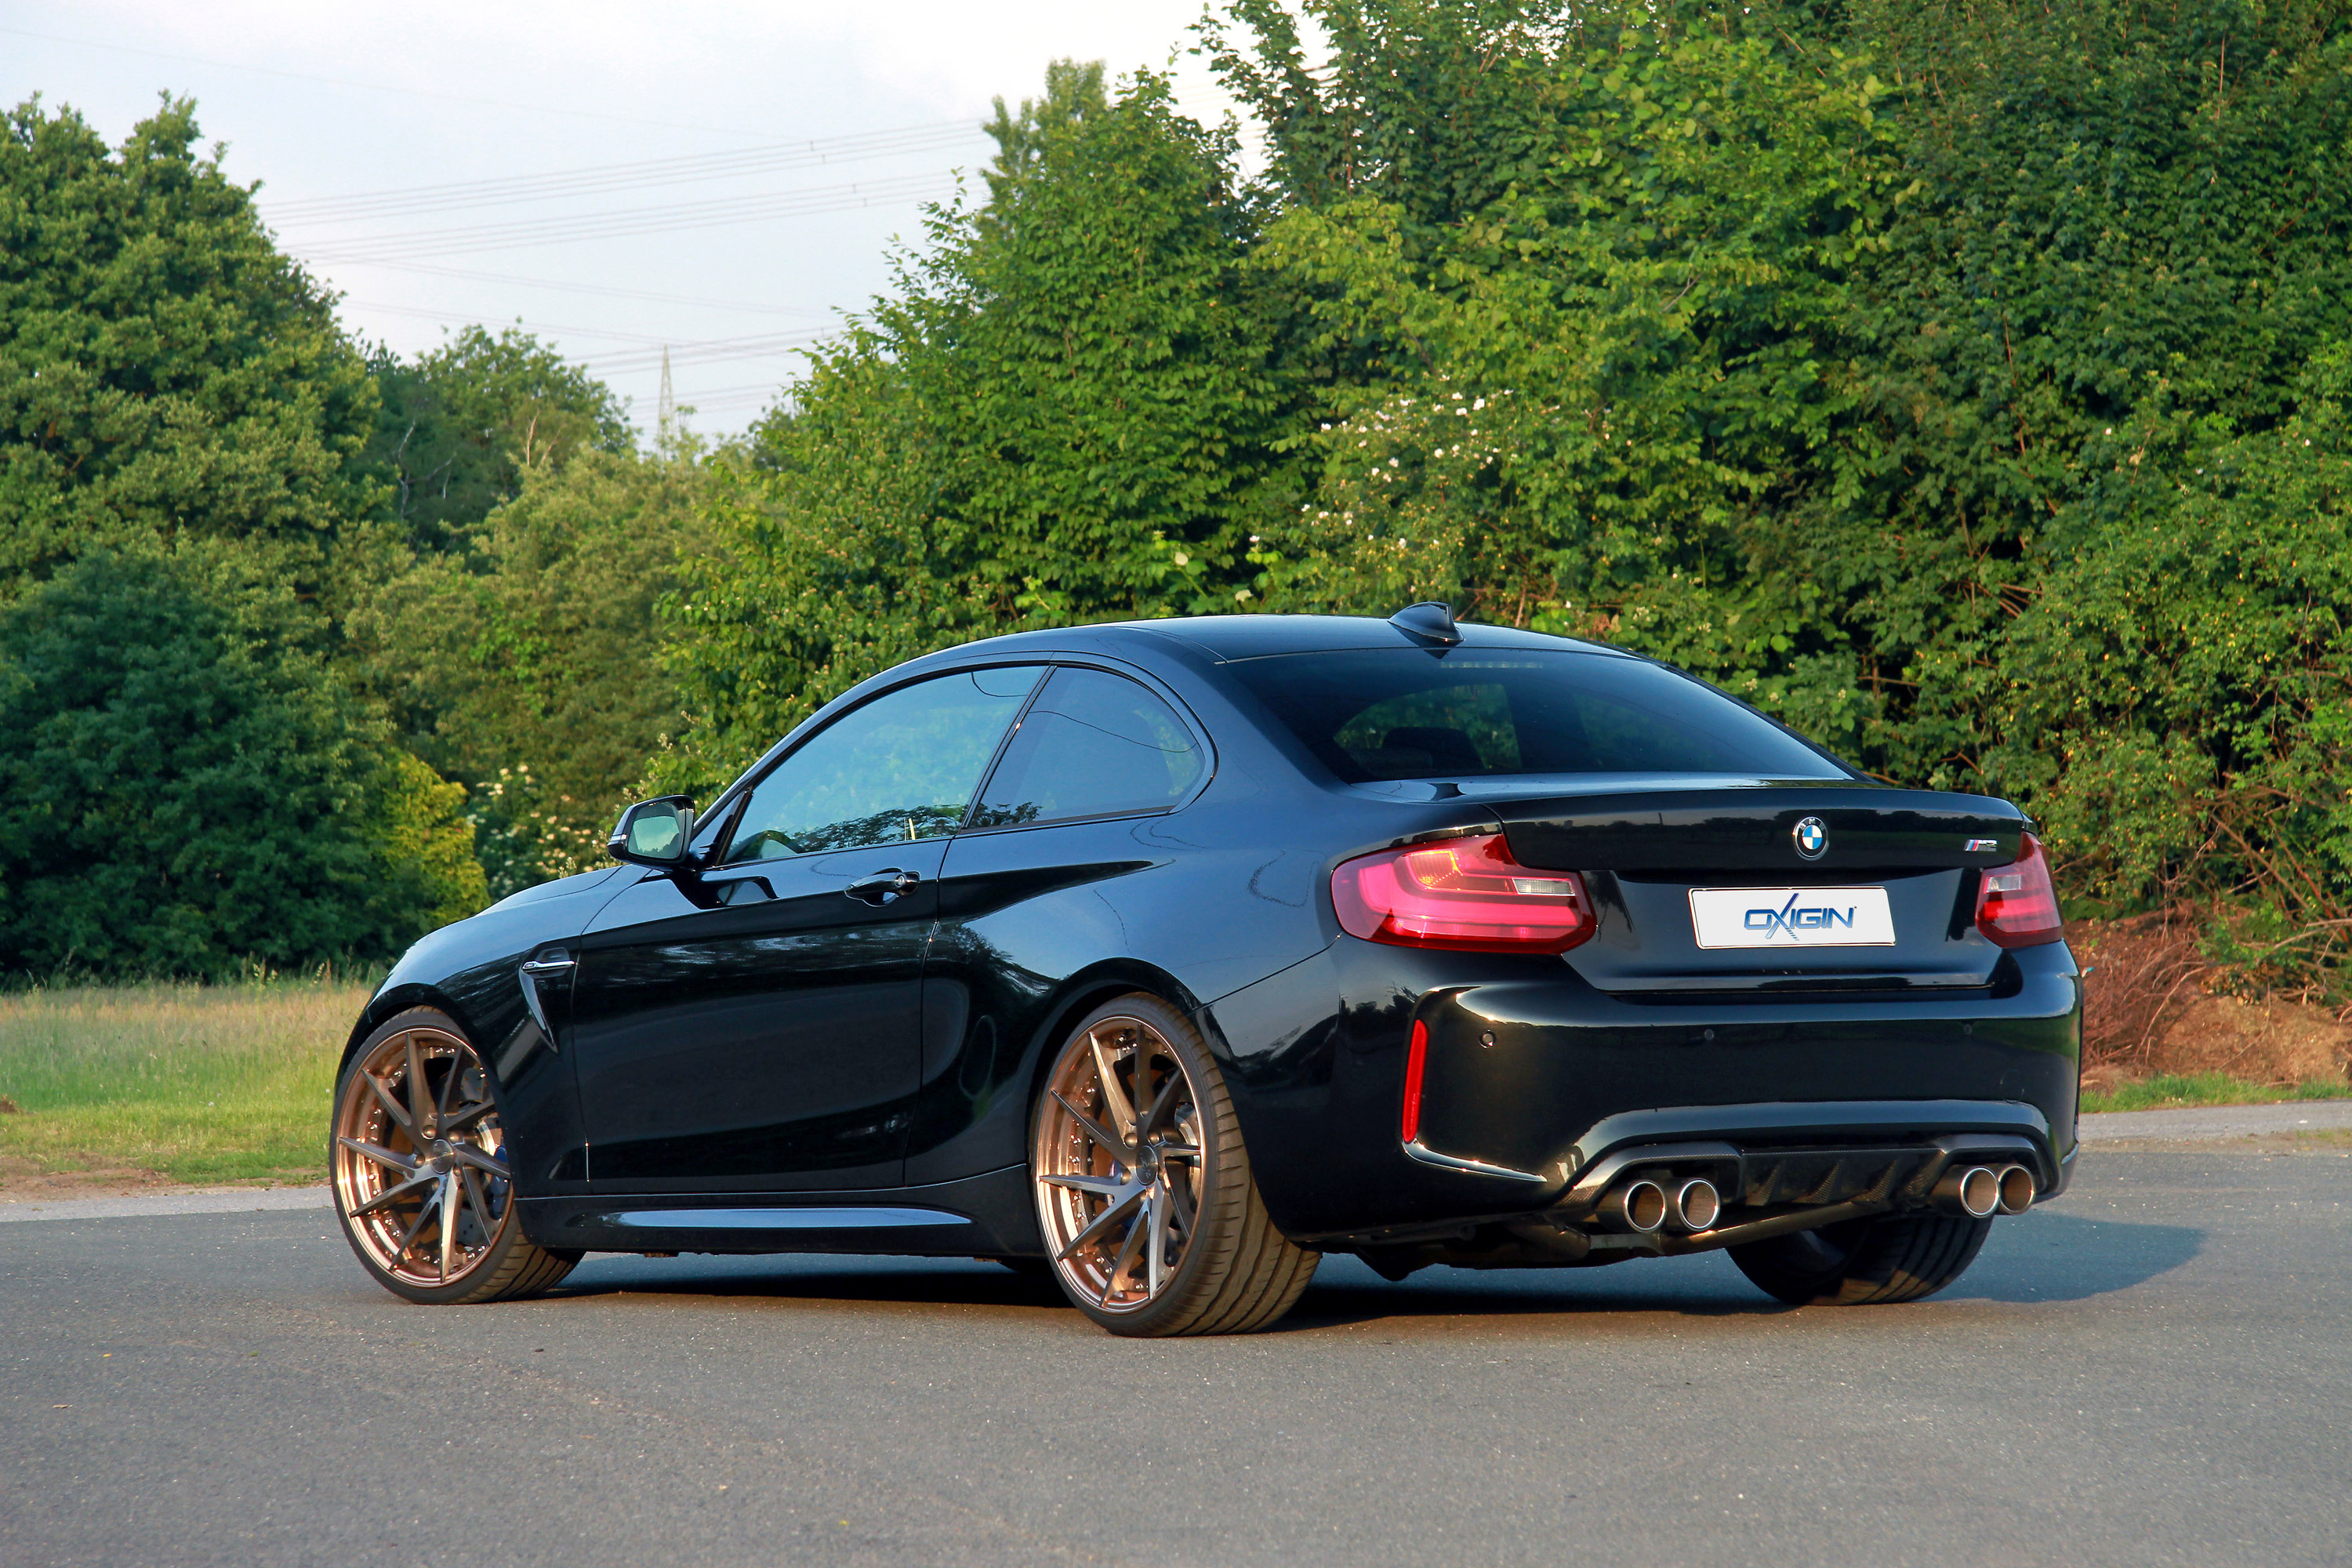 Oxigin Team Upgrades A Bmw M2 Vehicle